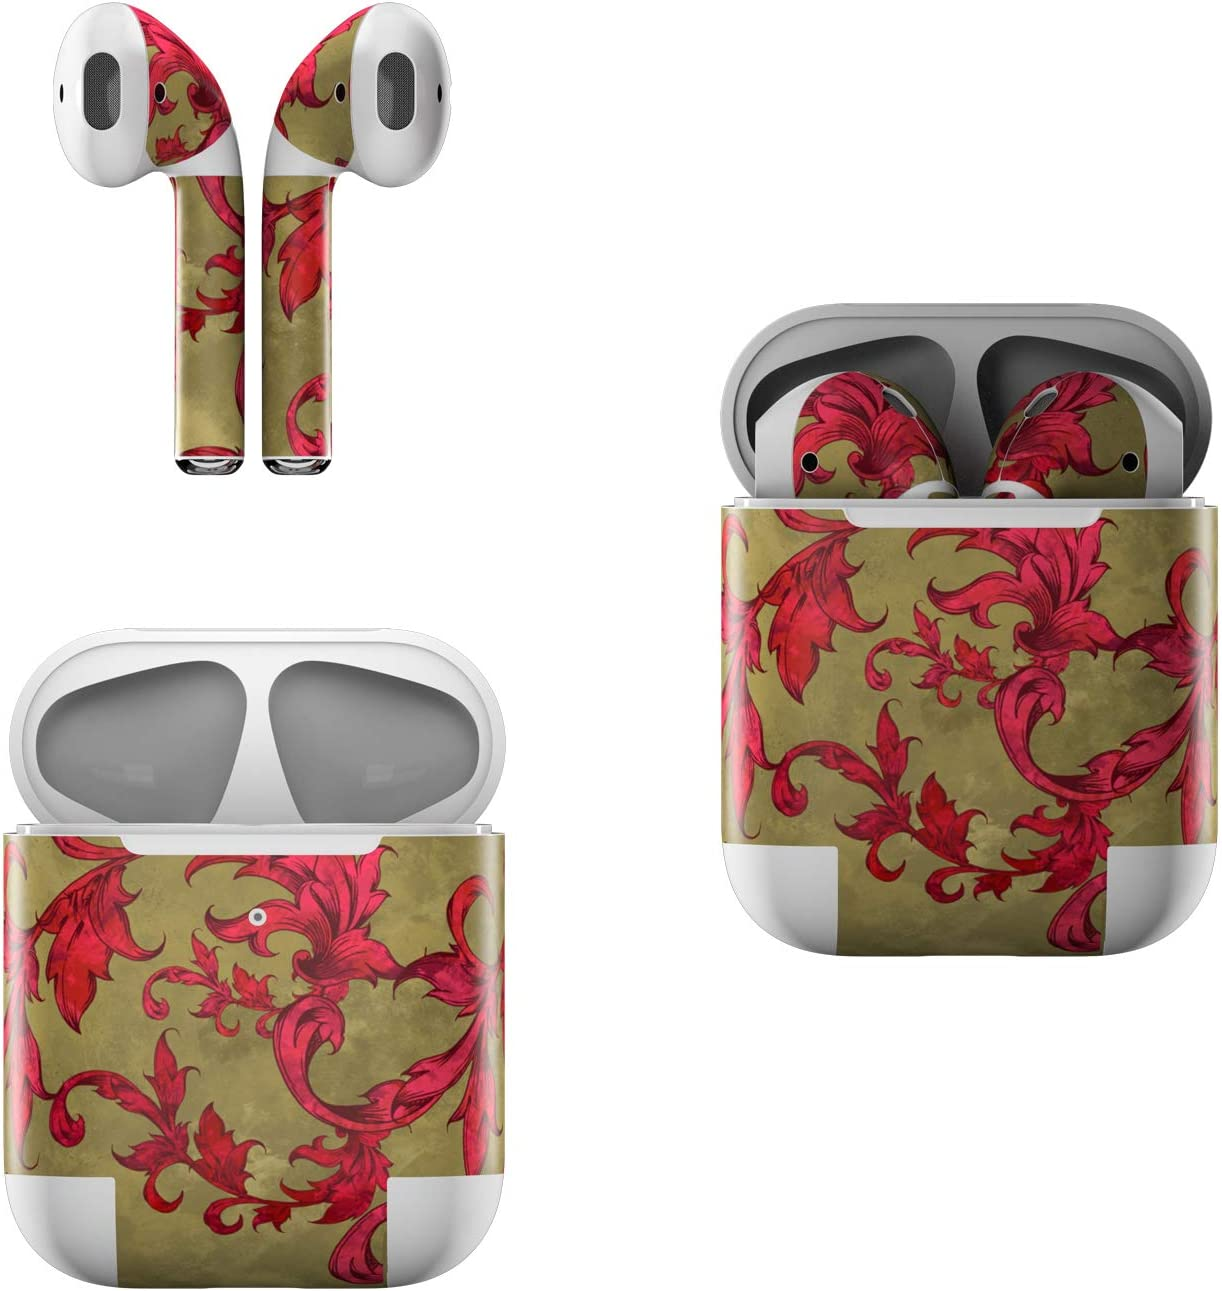 Skin Decals for Apple AirPods - Vintage Scarlet - Sticker Wrap Fits 1st and 2nd Generation